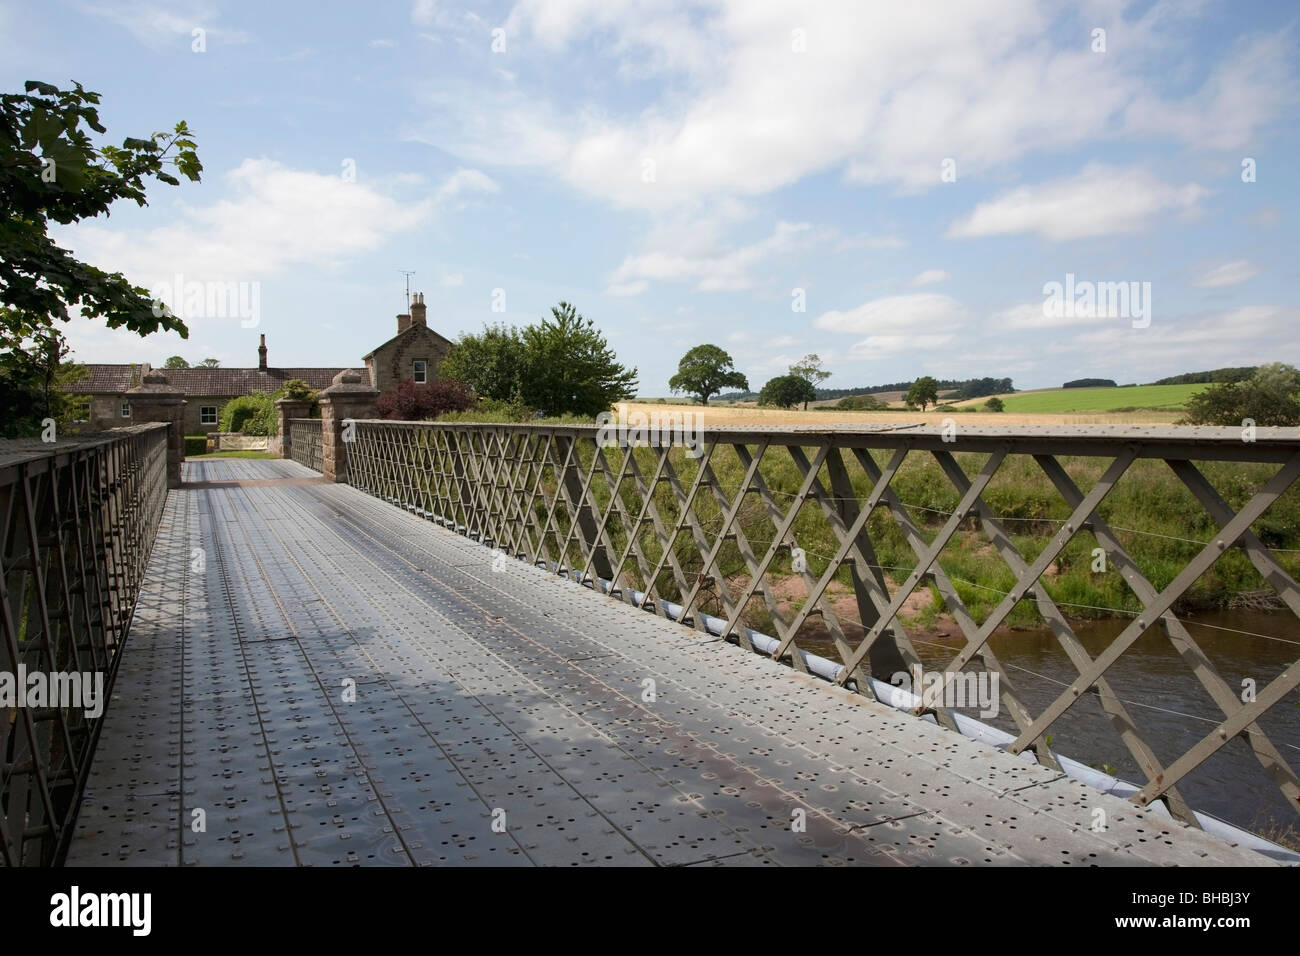 Pedestrian bridge, Ford and Etal, Northumberland, England Stock Photo